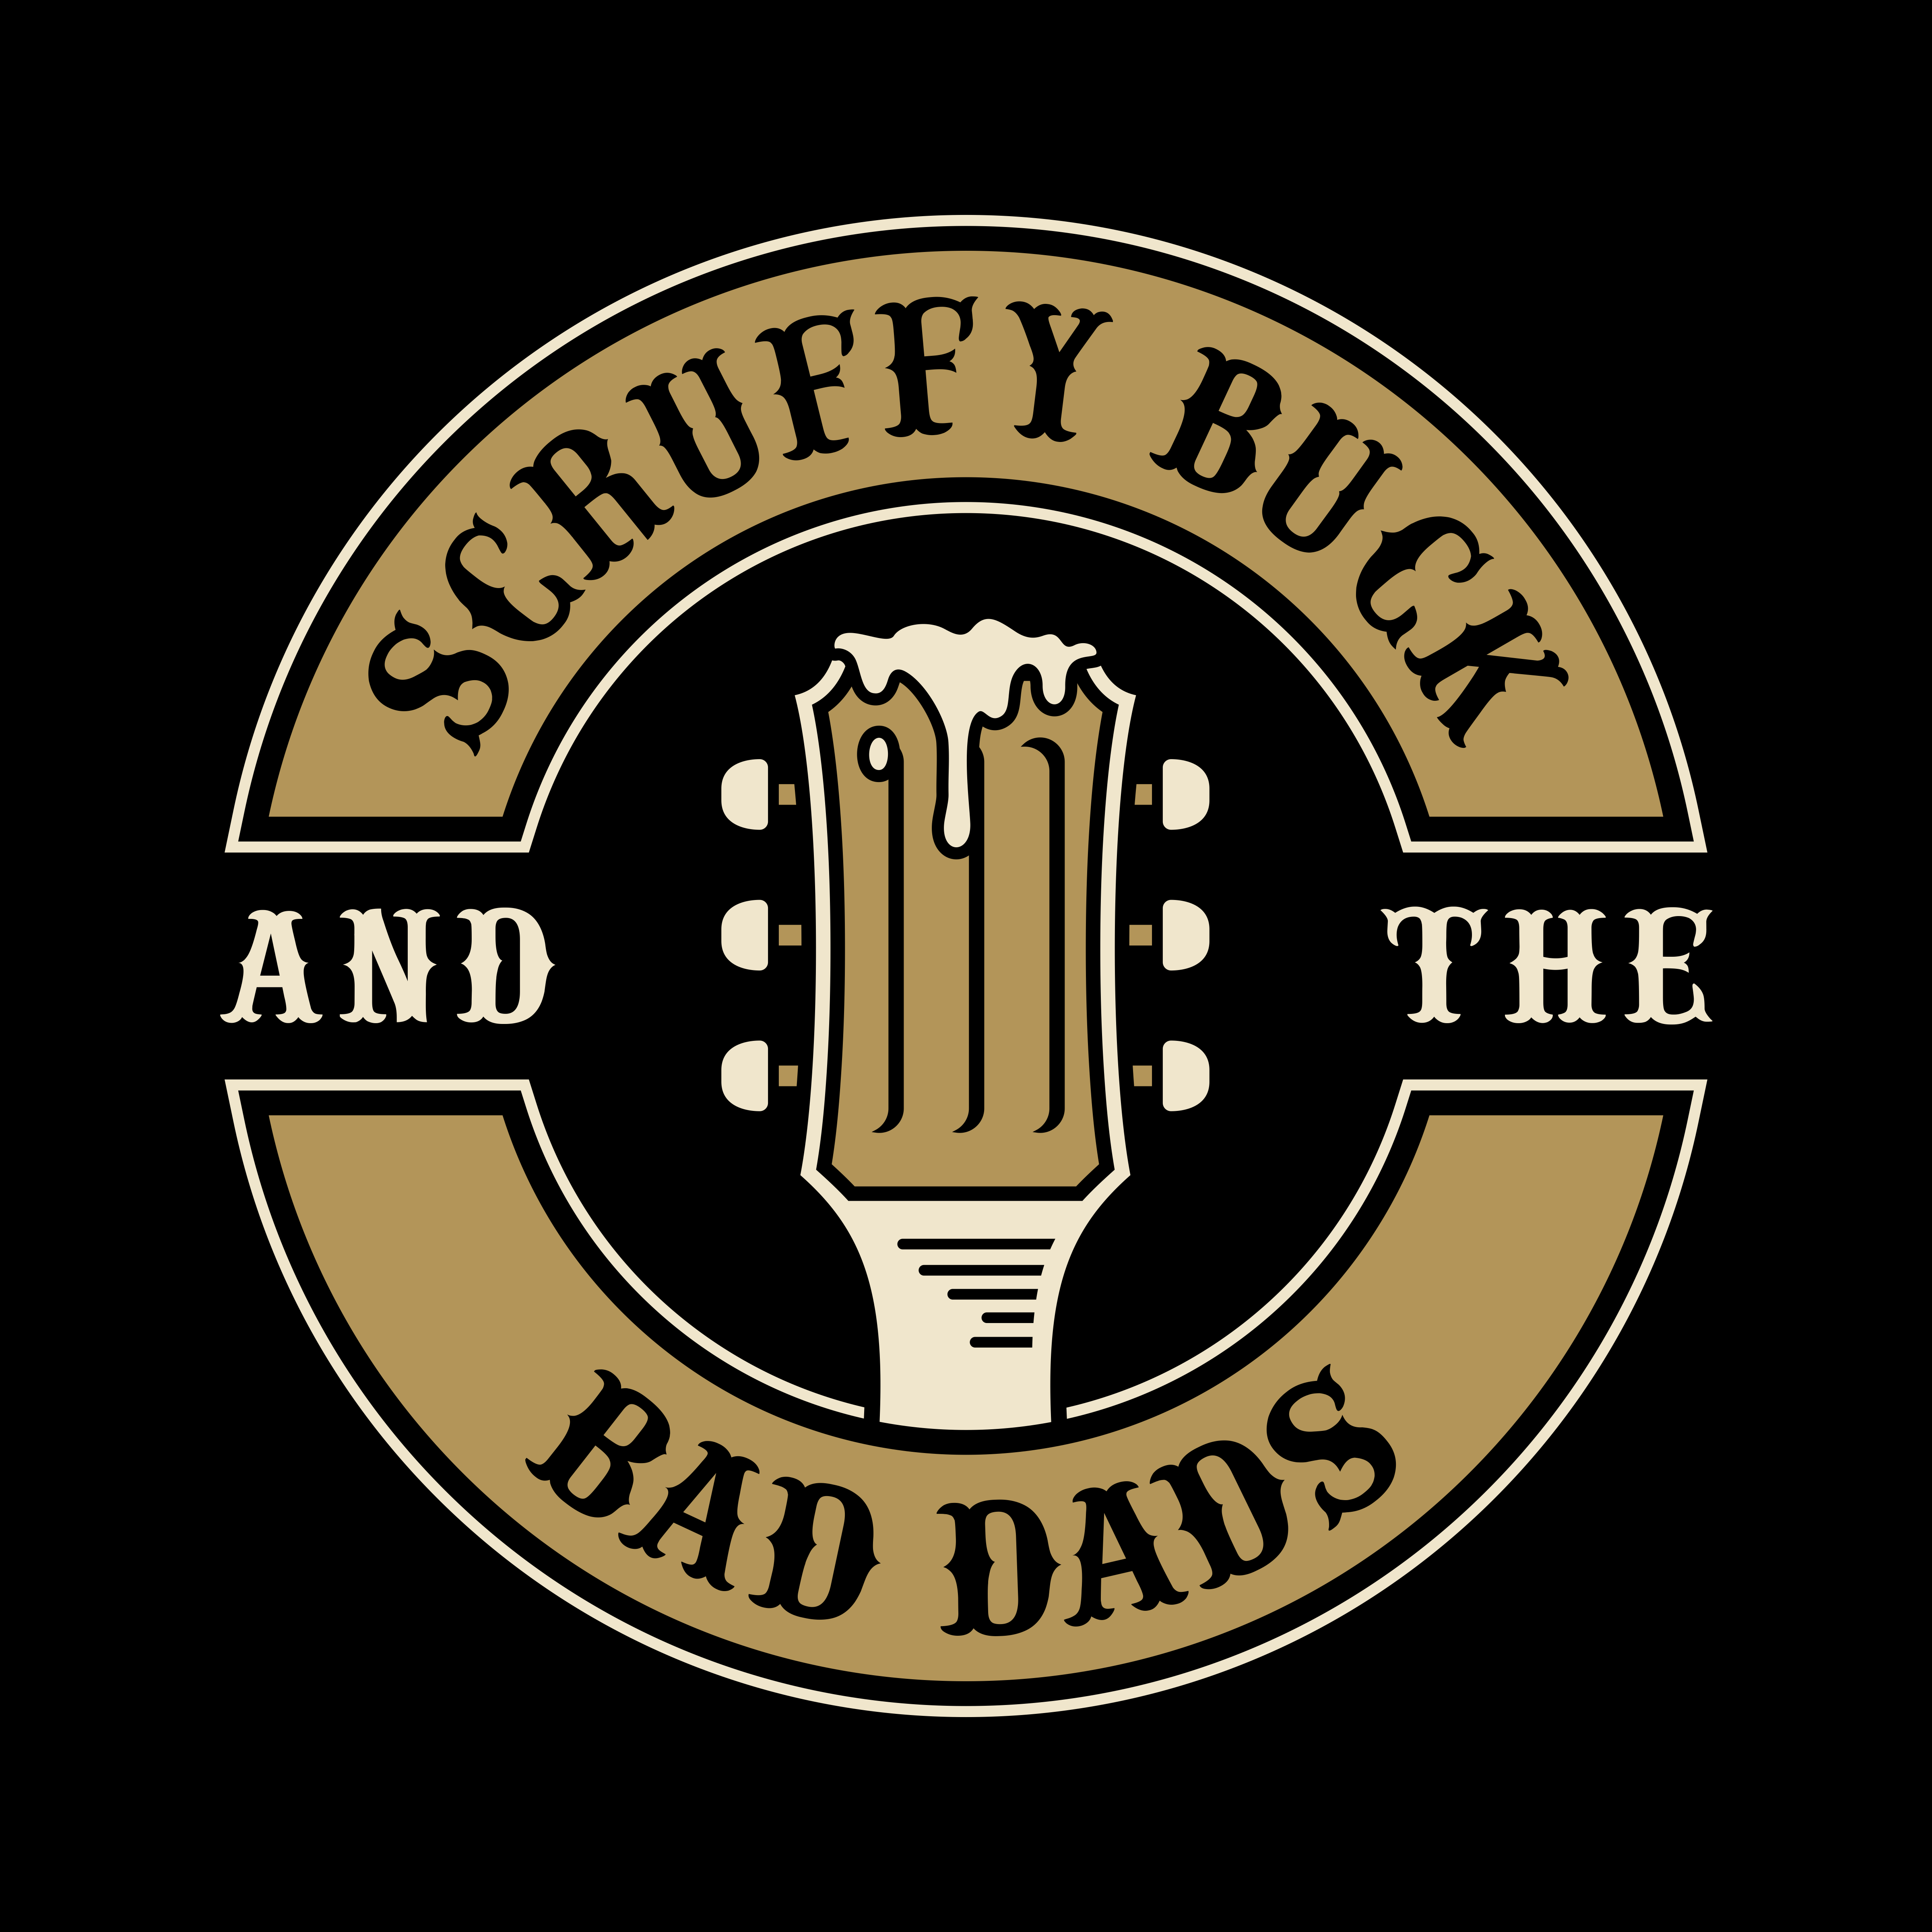 Four bad ass rock & roll, motorcycling, beer drinking, hockey playing dads need a logo for the band!